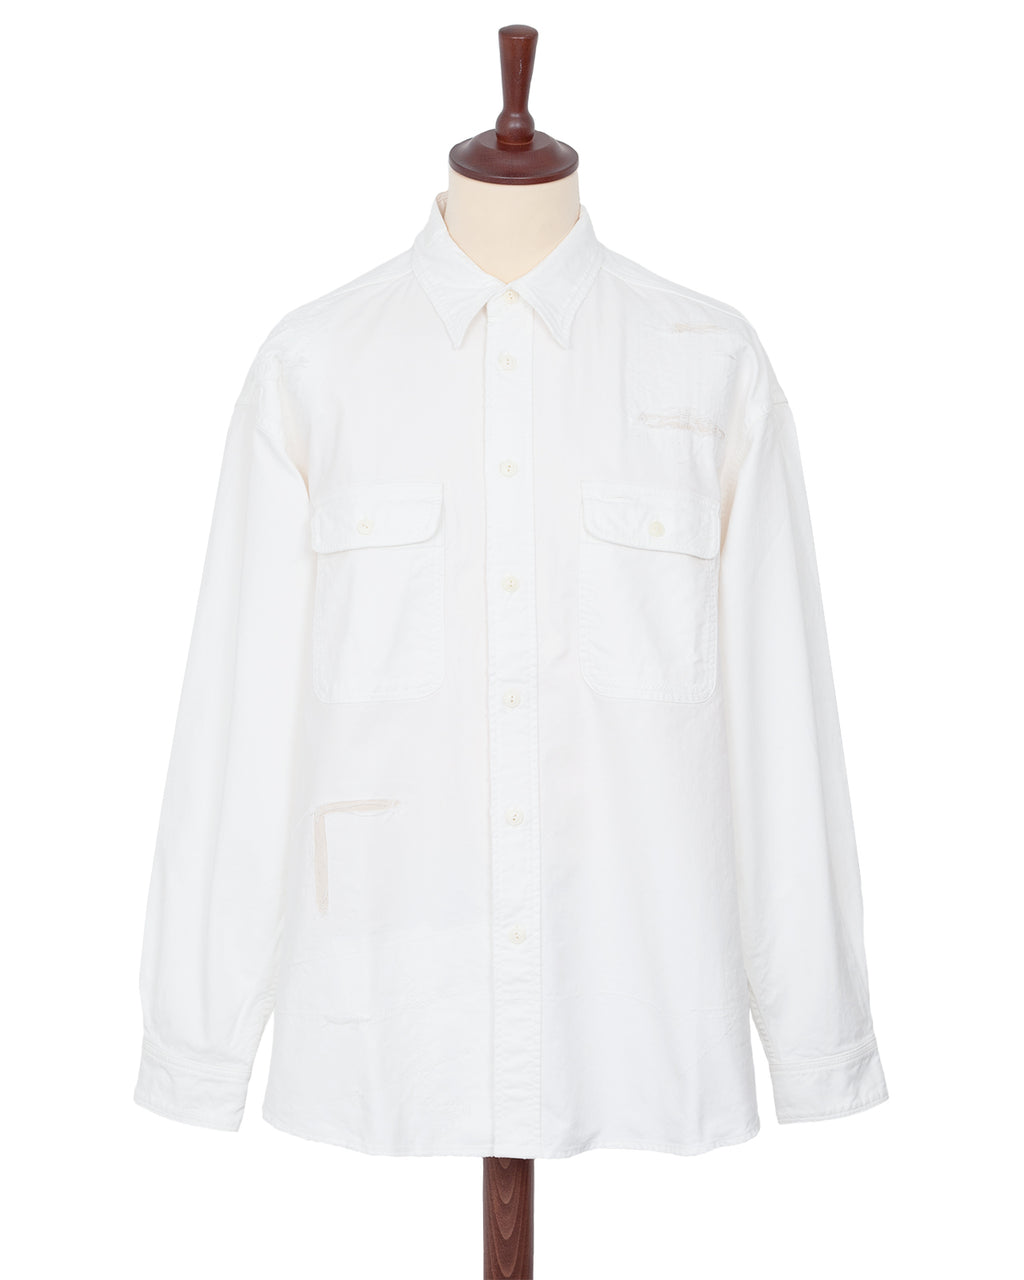 Visvim Grand River Shirt, Crash White